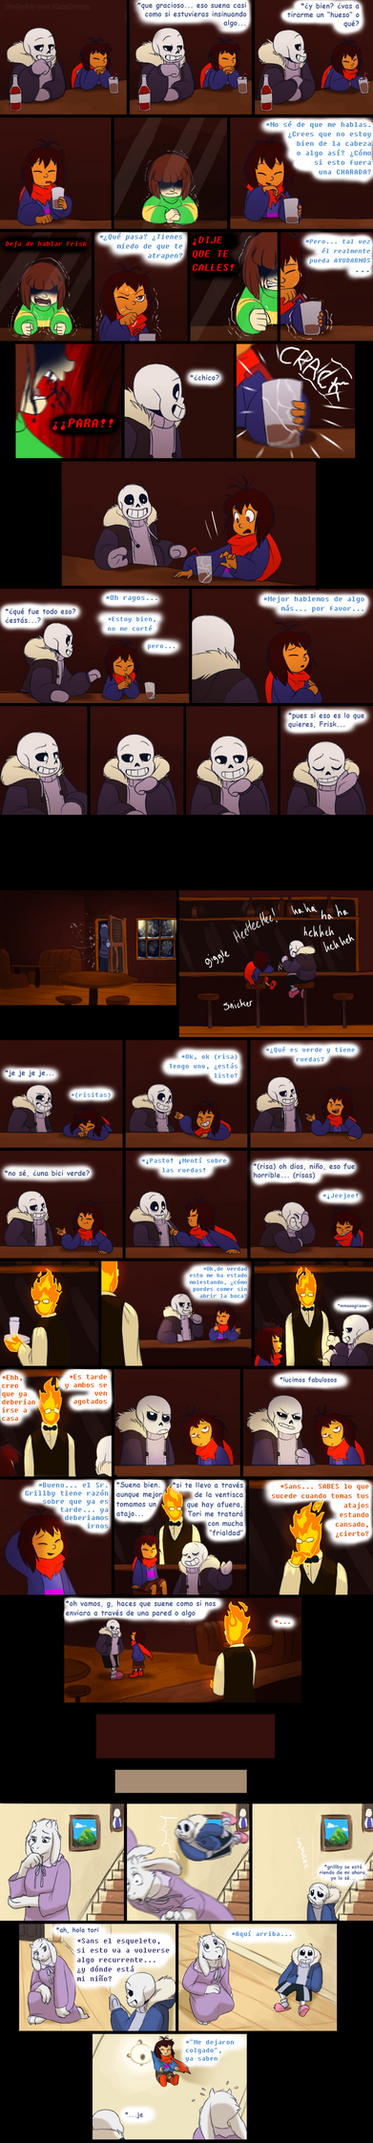 Endertale Pag 13 - by TC-96 by AlexsDragon